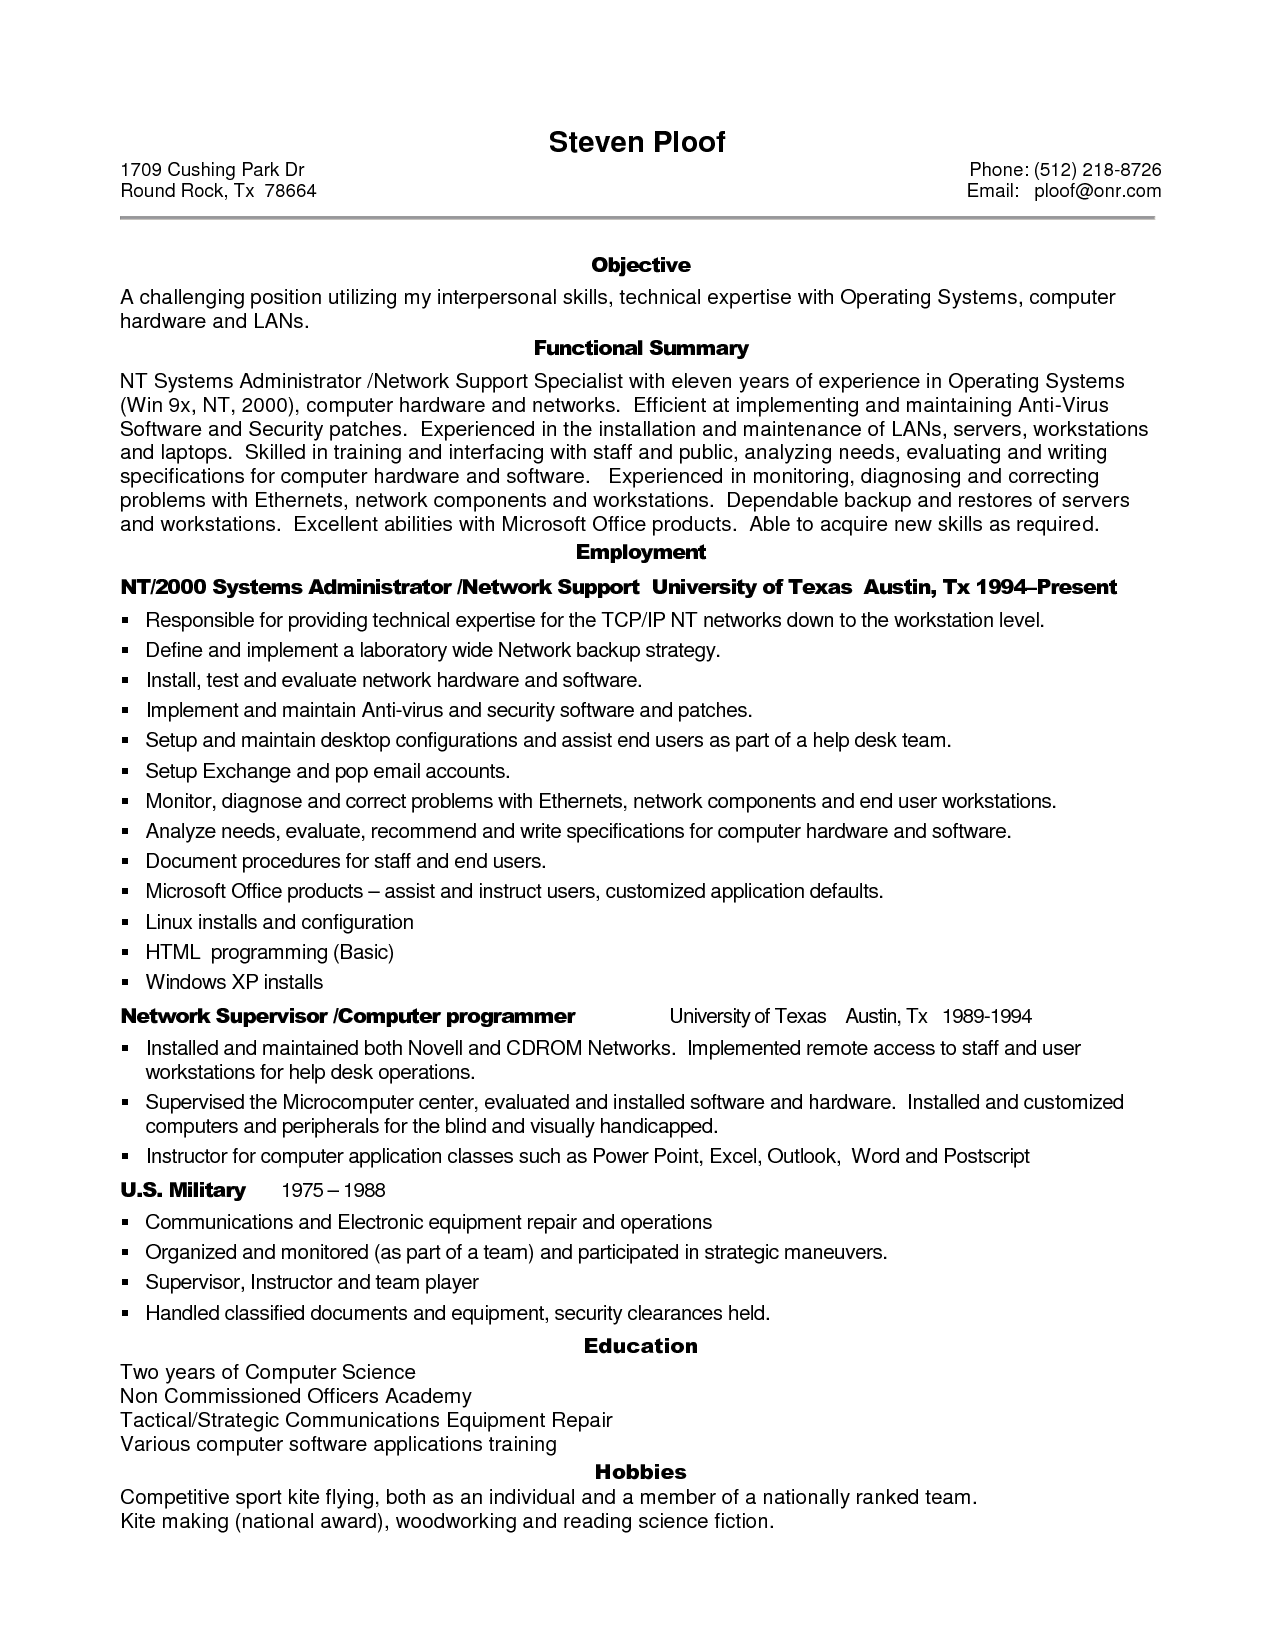 sample resume for experienced it professional sample resume for experienced it professional resume tips for - Sample Resume For It Professional